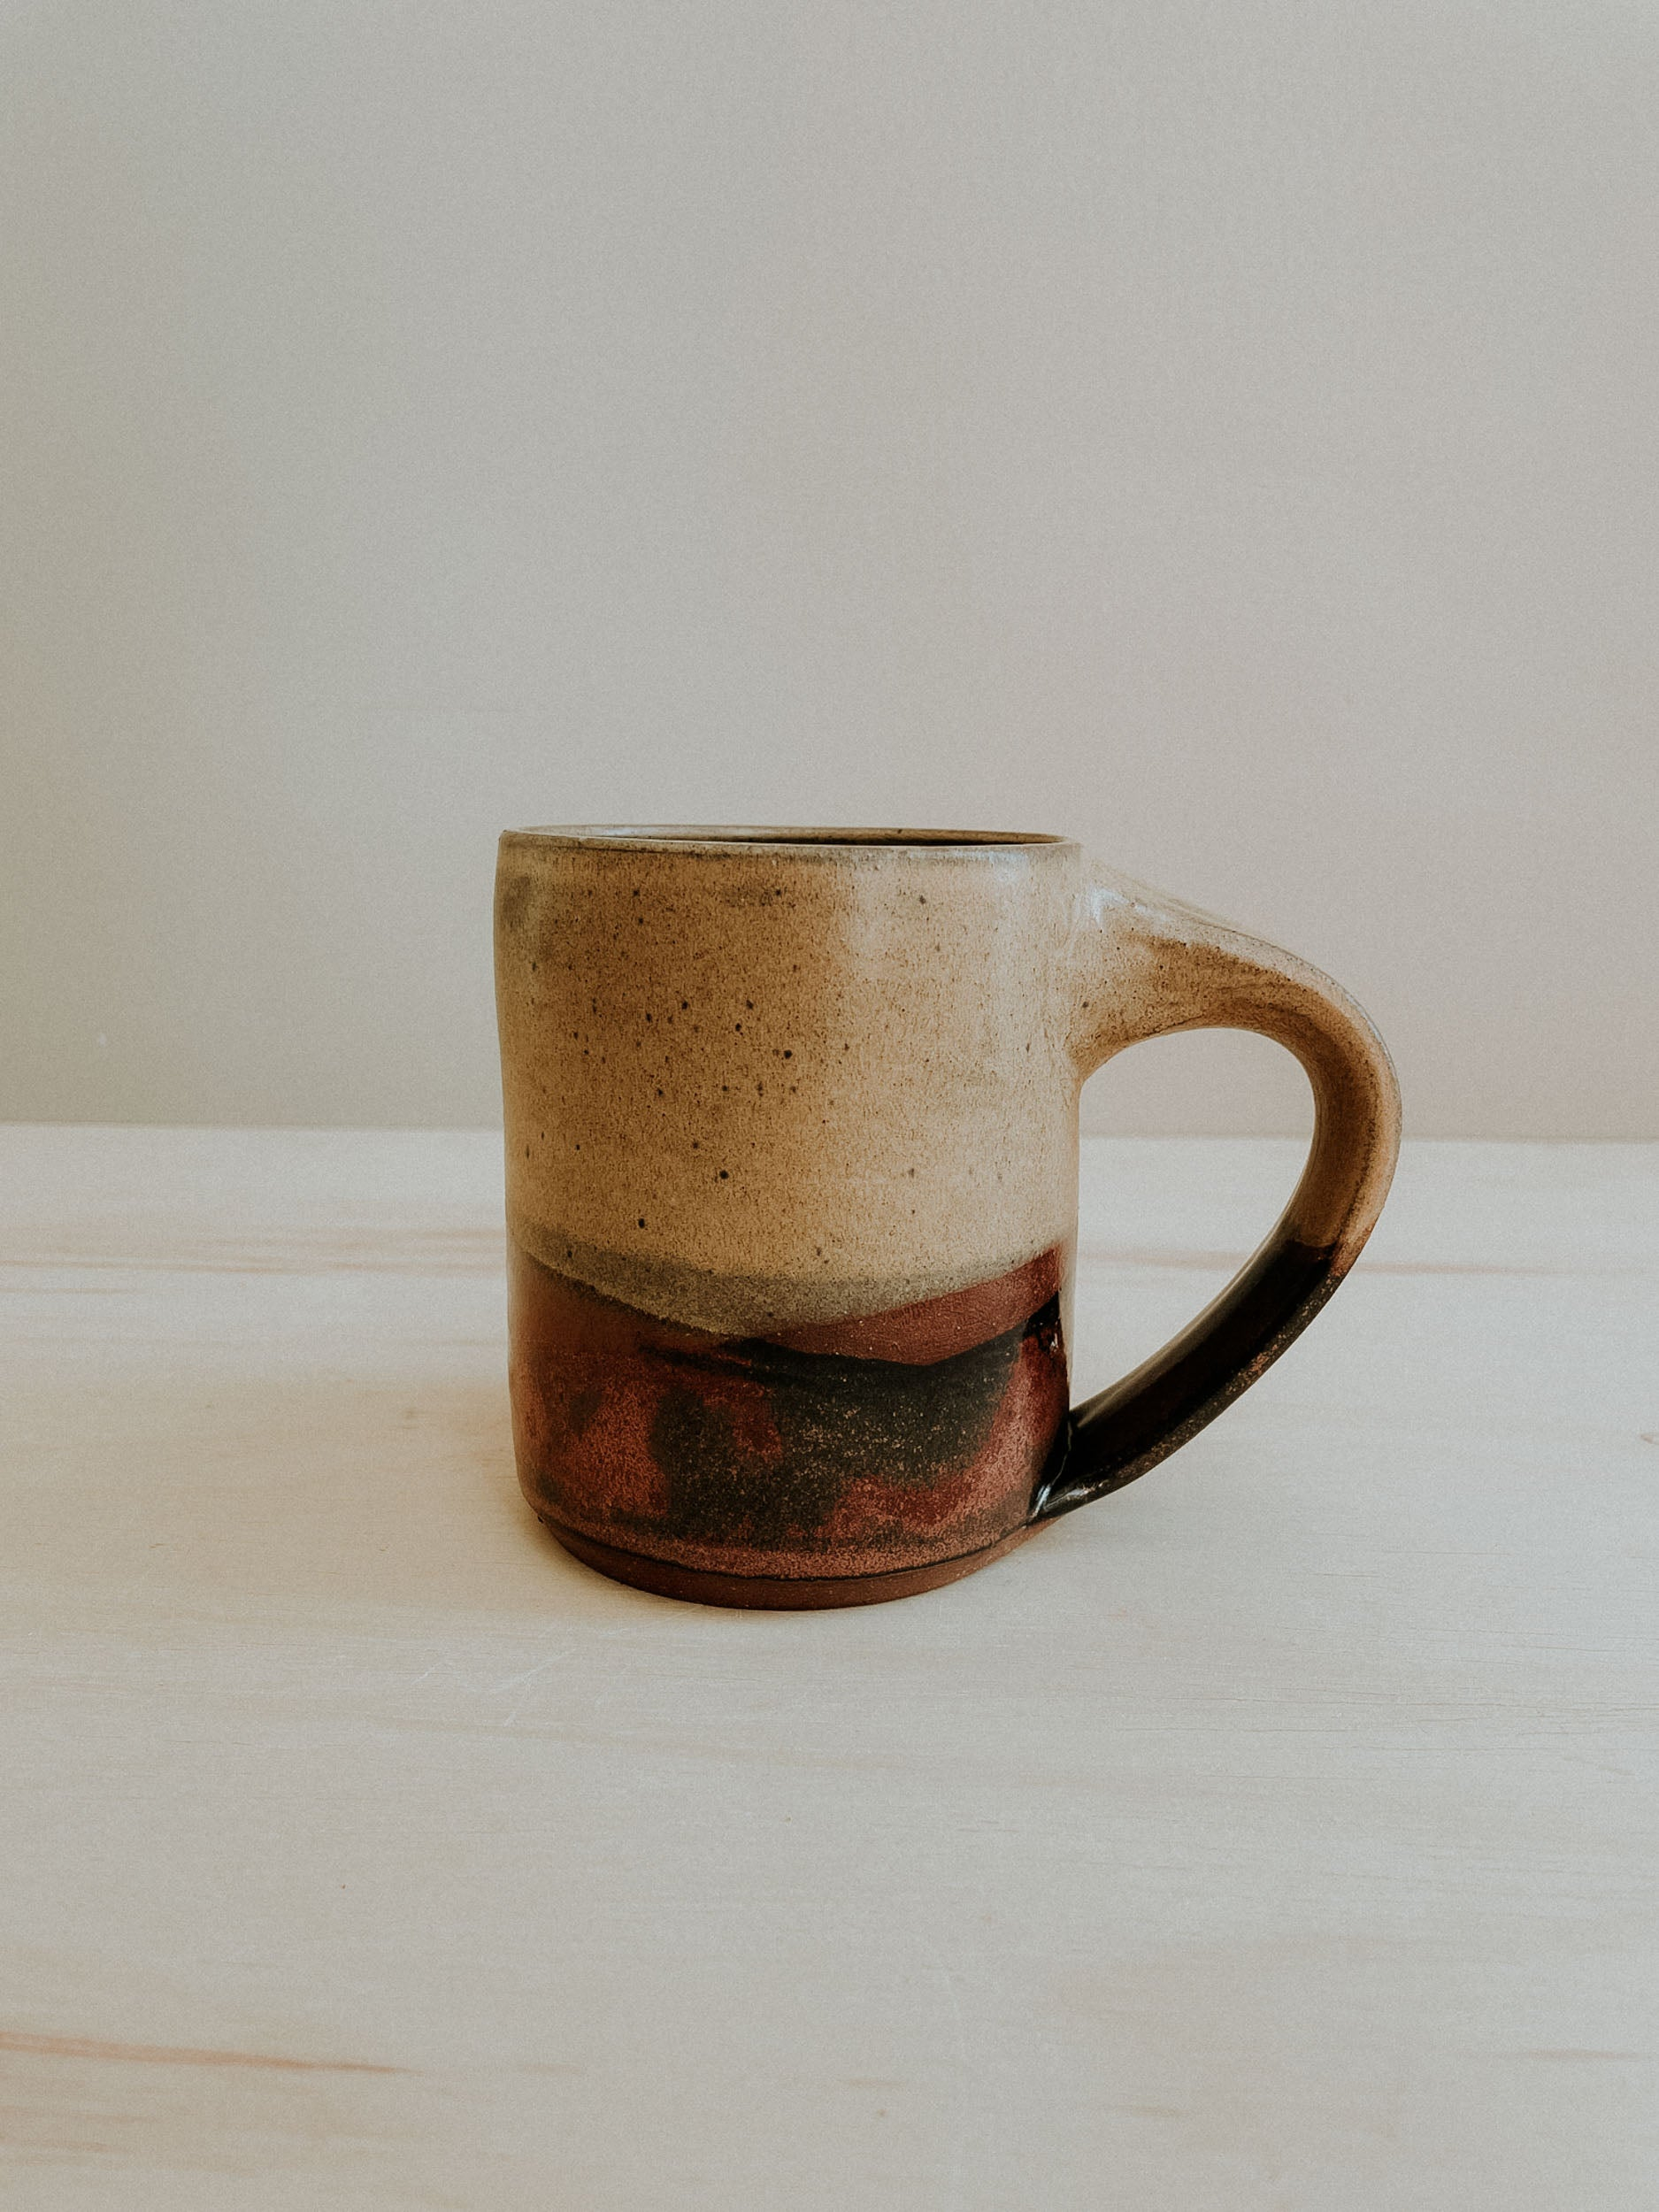 Middle Mug - Finch x Copper